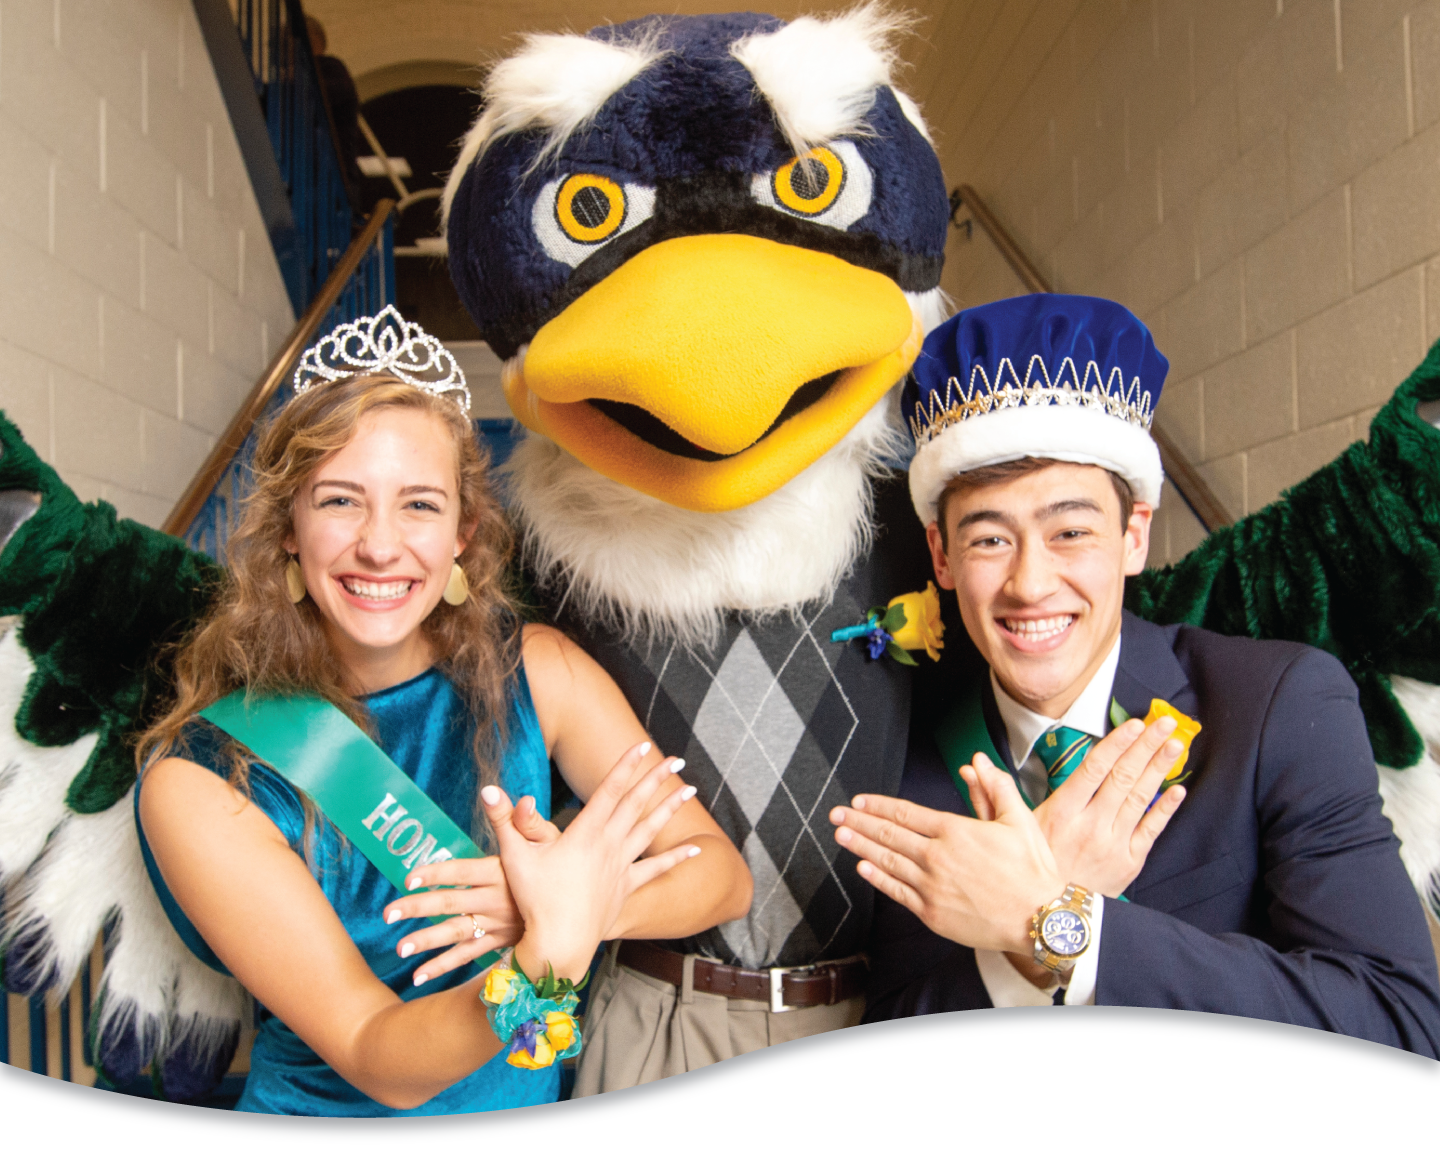 2019 Homecoming King and Queen with Sammy C. Hawk